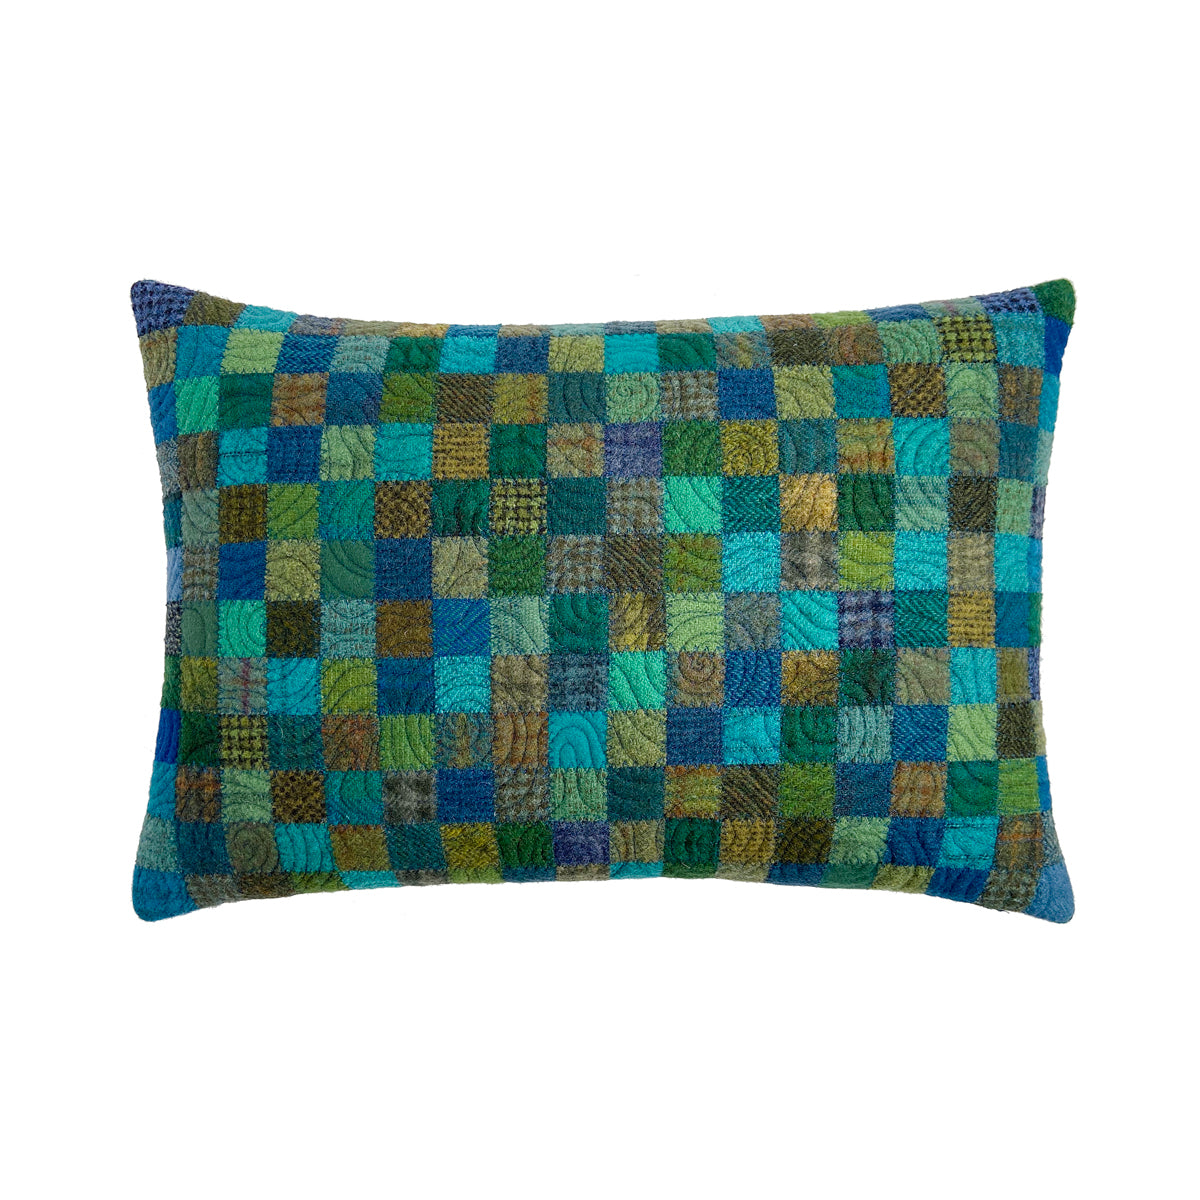 NE 41st Avenue Cushion • 12x18 N